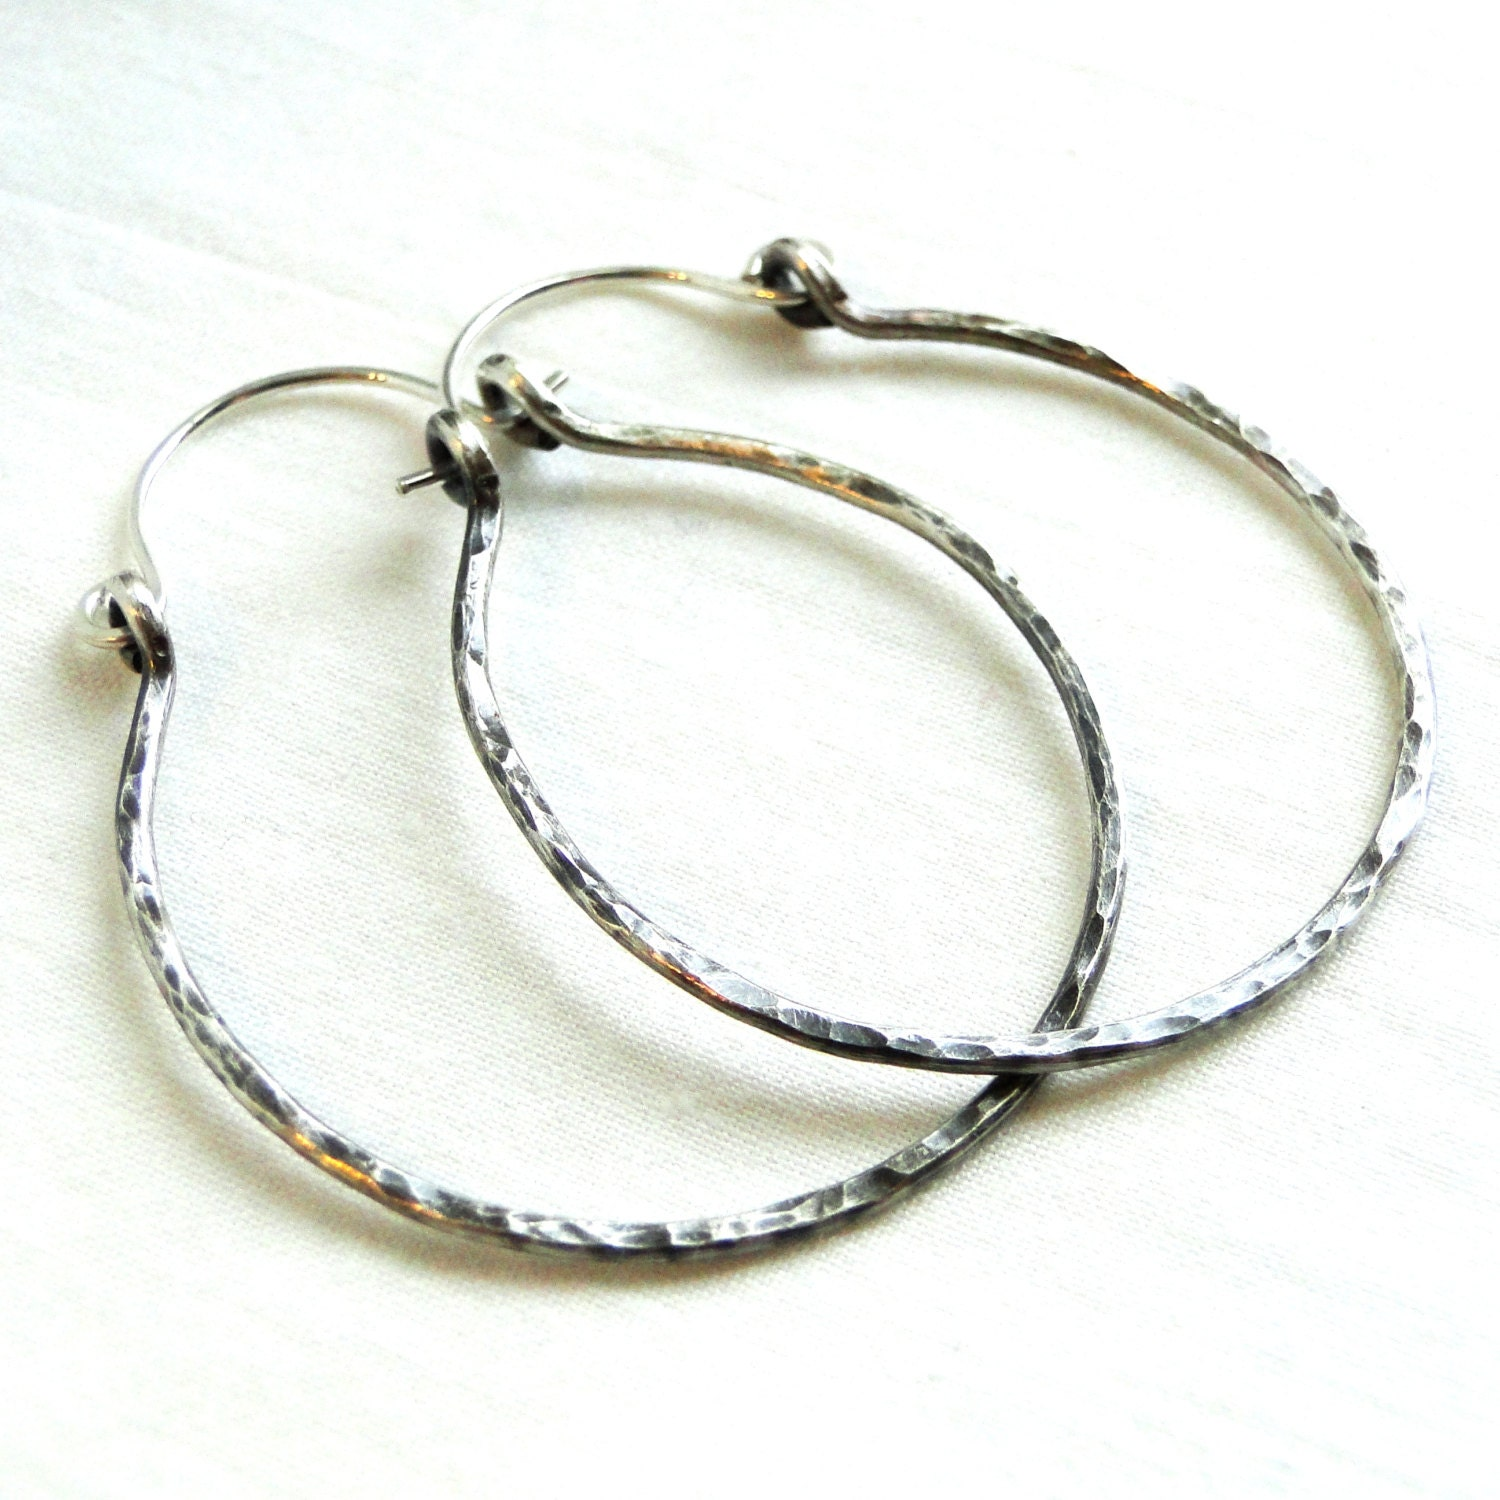 hammered sterling silver wire jewelry hoop earrings extra